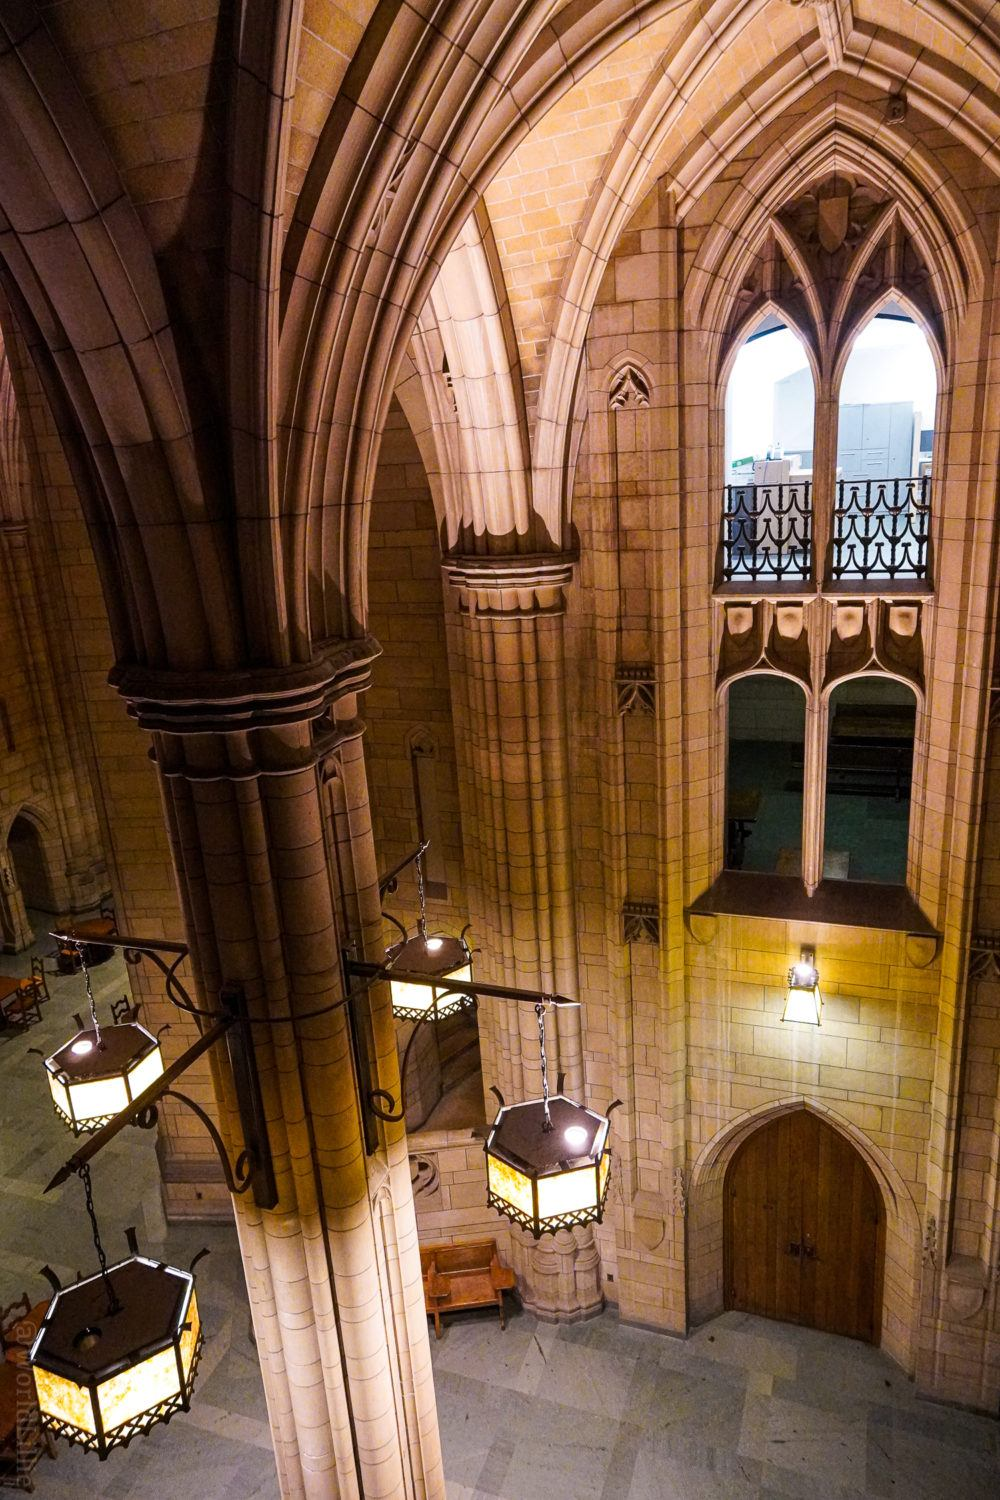 Such amazing arches in the Cathedral of Learning.